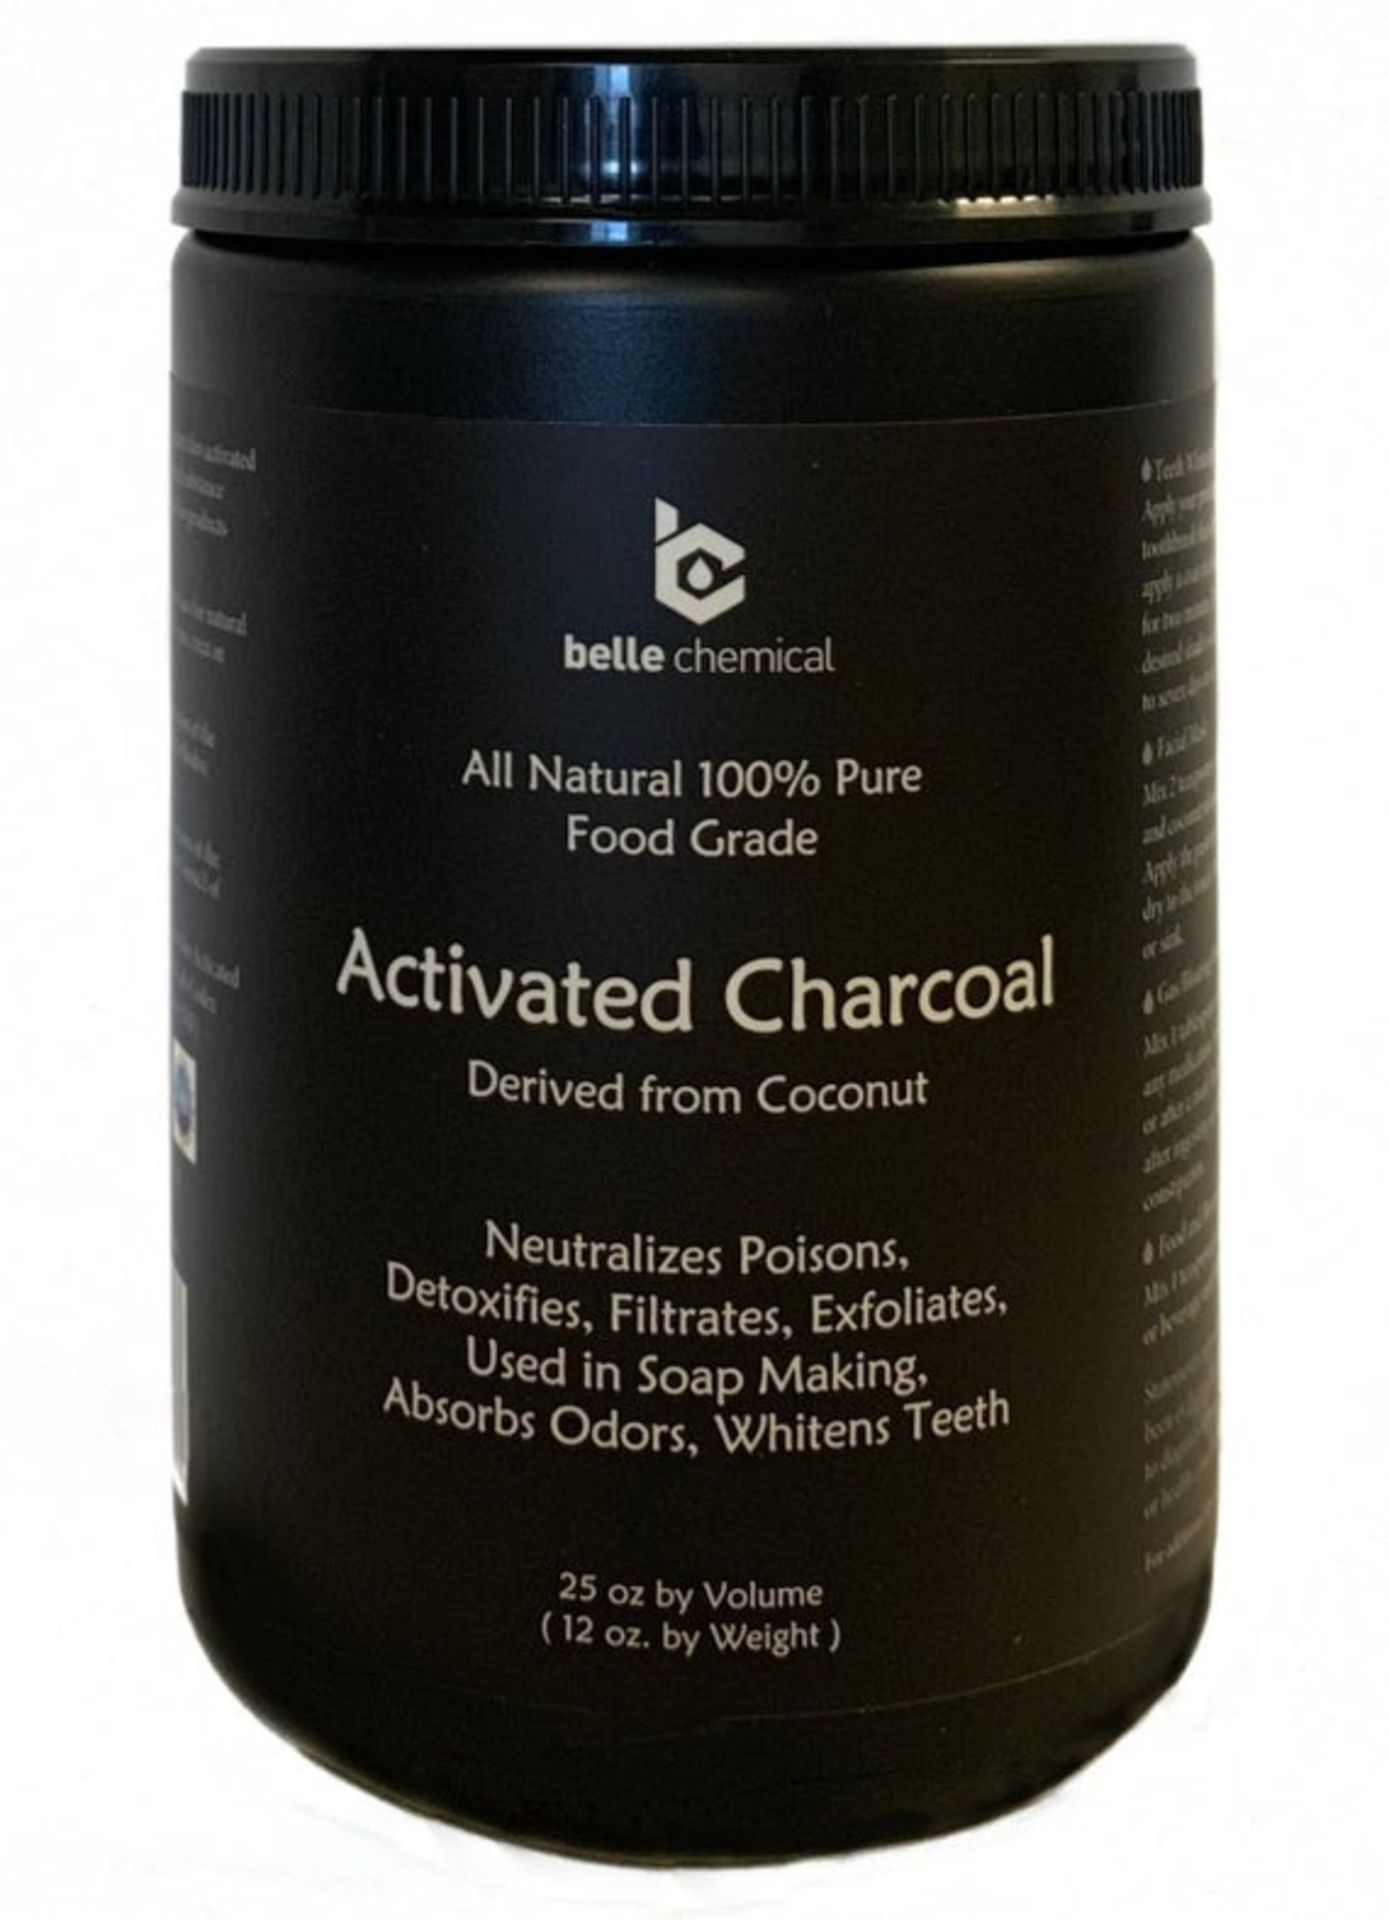 Belle Chemical Activated Charcoal Derived From Coconut (25Oz). For Teeth Whitening